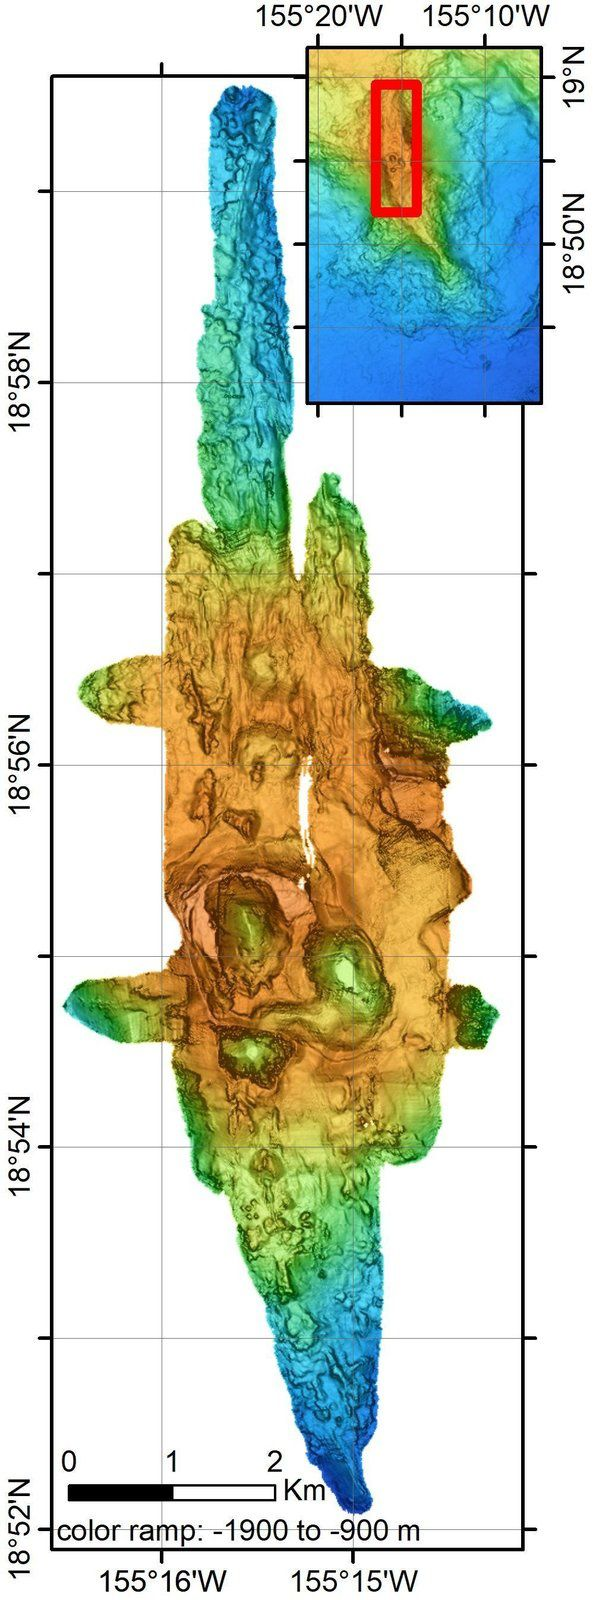 Lō'ihi Submarine Volcano, Hawaii - Study Area - Doc. in Structure of Lō'ihi Seamount, Hawai'i and Lava Flow Morphology from High-Resolution Mapping / References in Sources